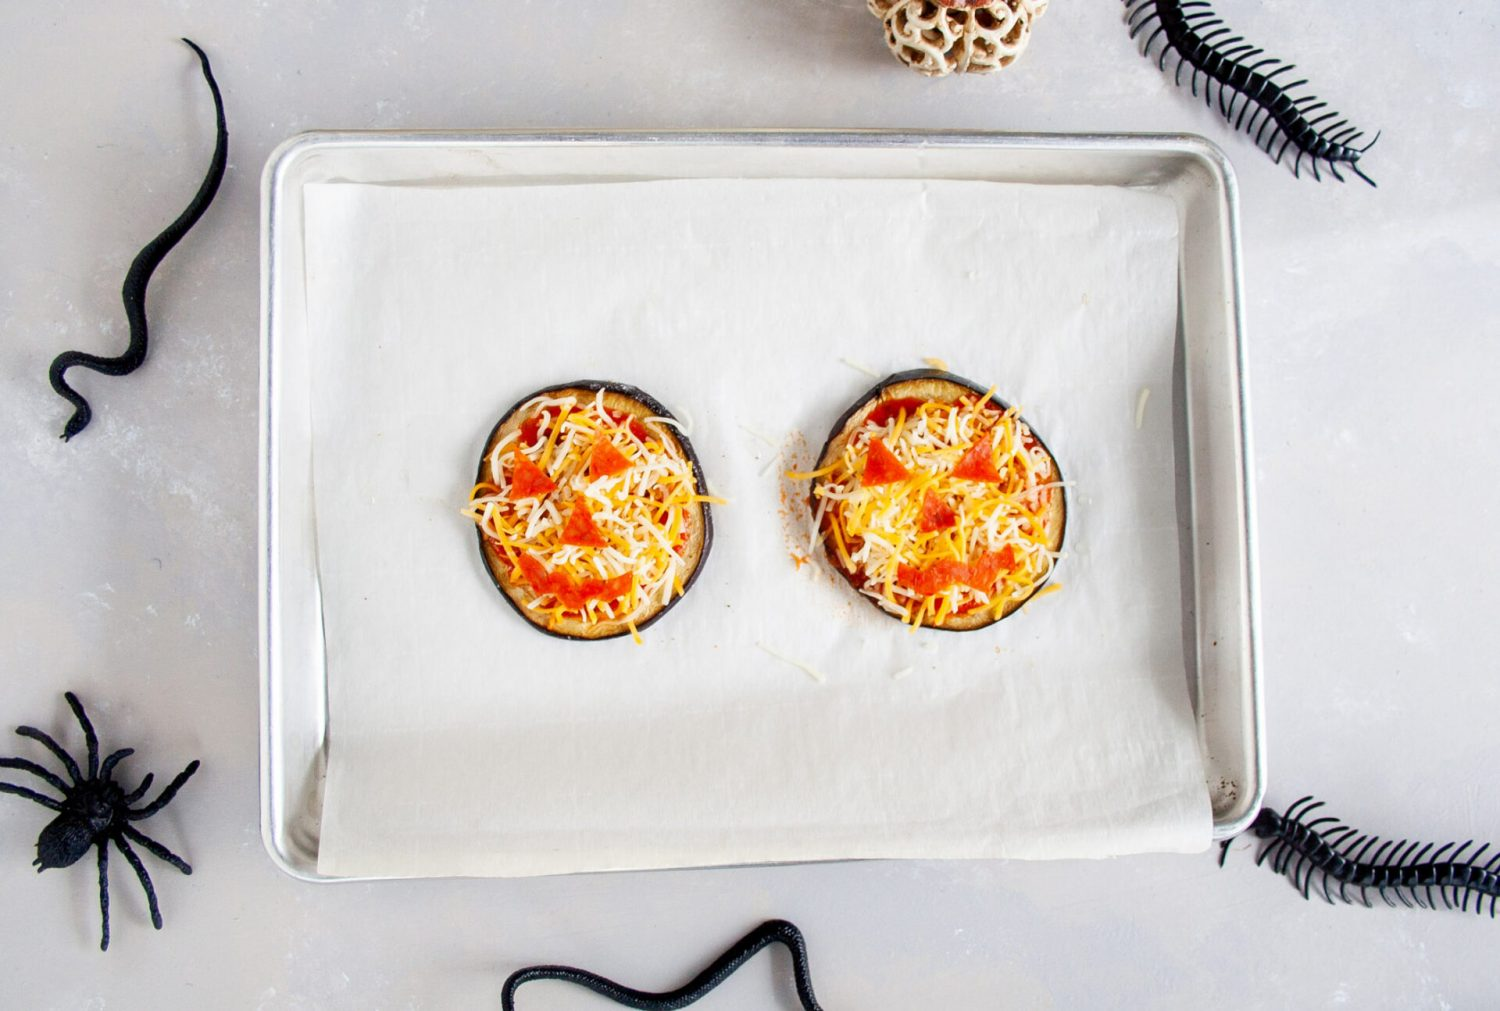 Halloween Eggplant Pizzas. These pepperoni and cheese pizzas that sort of look like pumpkins are delicious and easy to bake. They just might look more terrifying than you excepted. #ElleTalk #Pizza #Halloween